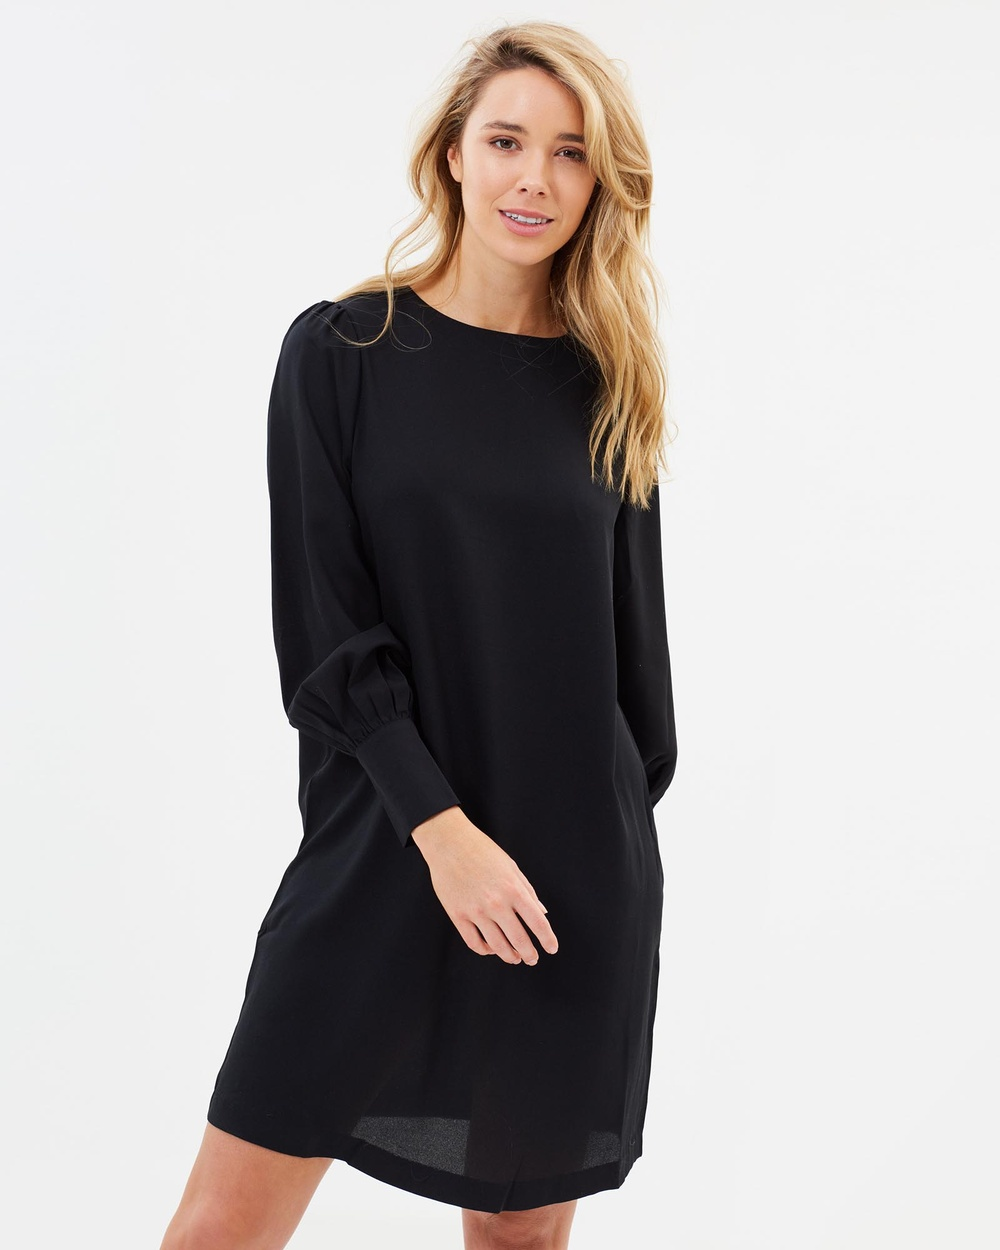 Otto Mode Robyn Dress Dresses Black Robyn Dress